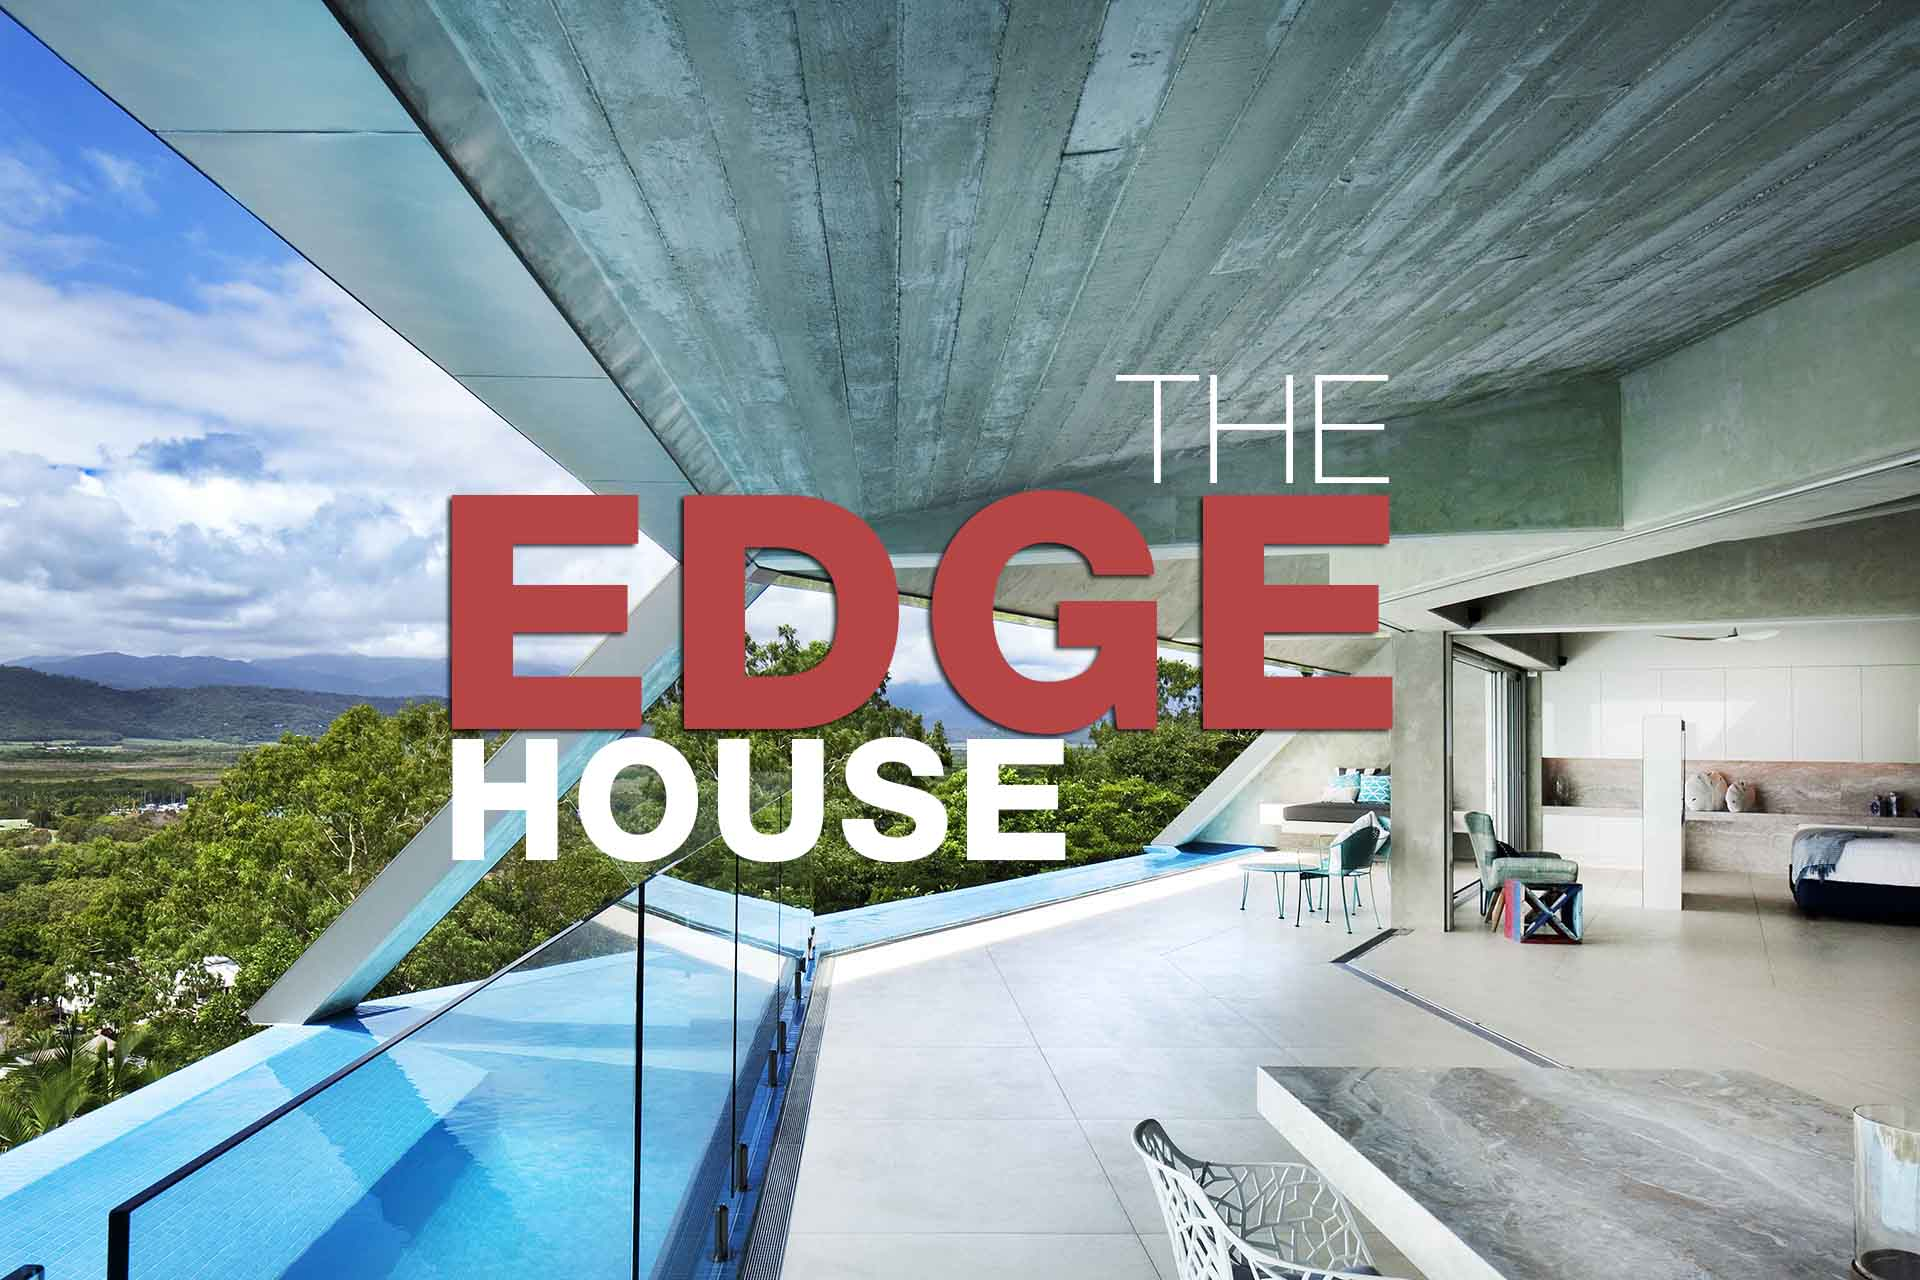 Edge-House-just3ds.com